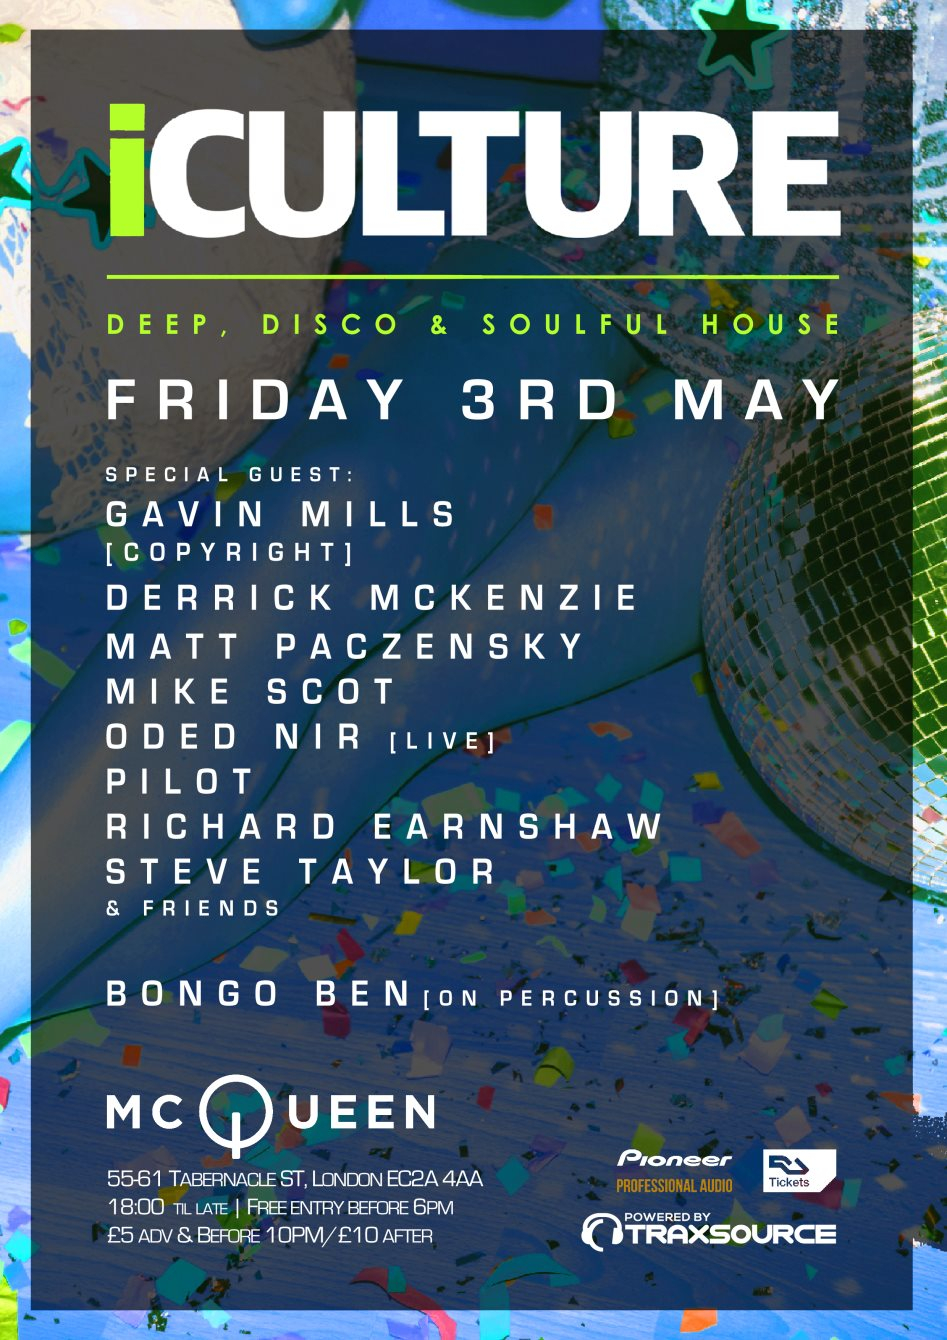 iCulture London at Mcqueen with Gav Mills (Copyright), Mike Scot, Oded Nir & Friends - Flyer front